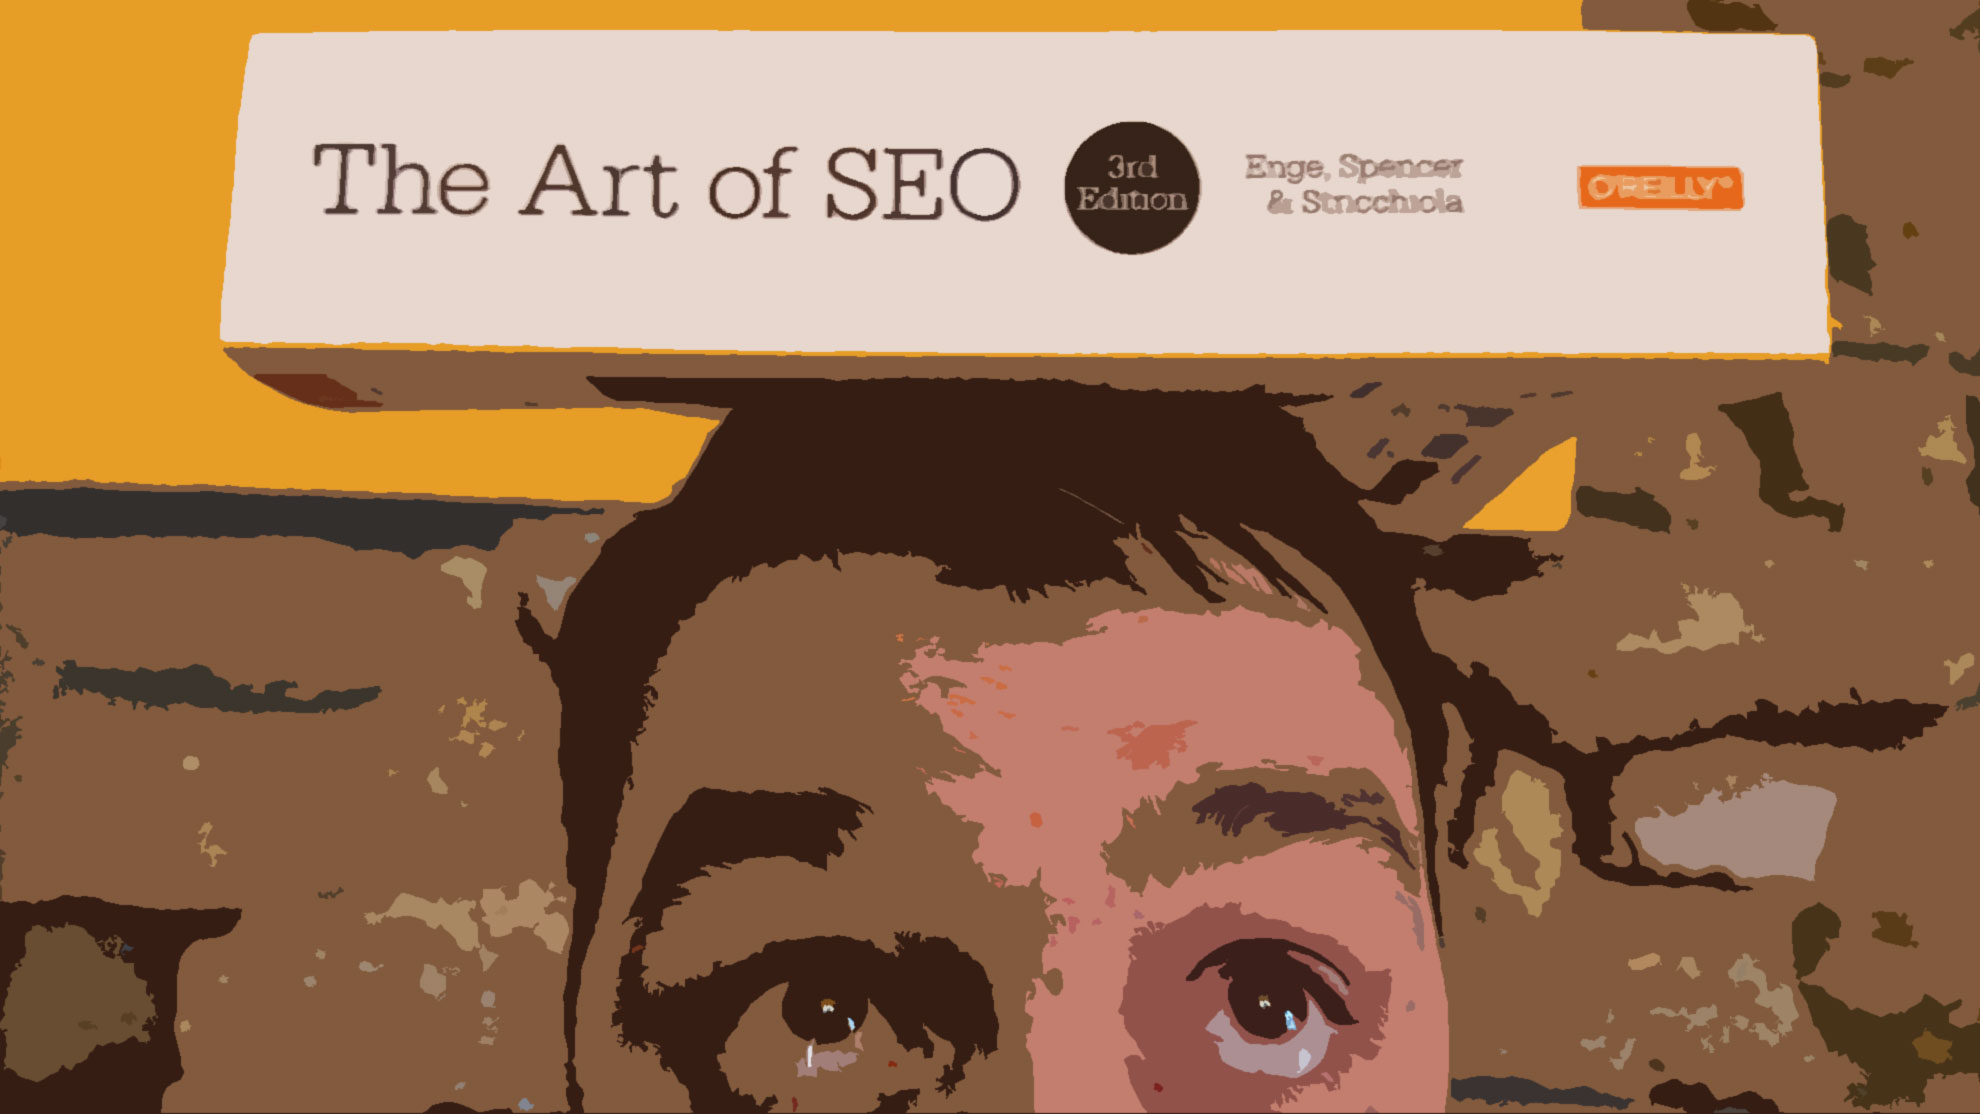 The Art of SEO - Consulenza SEO per il tuo business online | Delizard Siti Web, Livorno